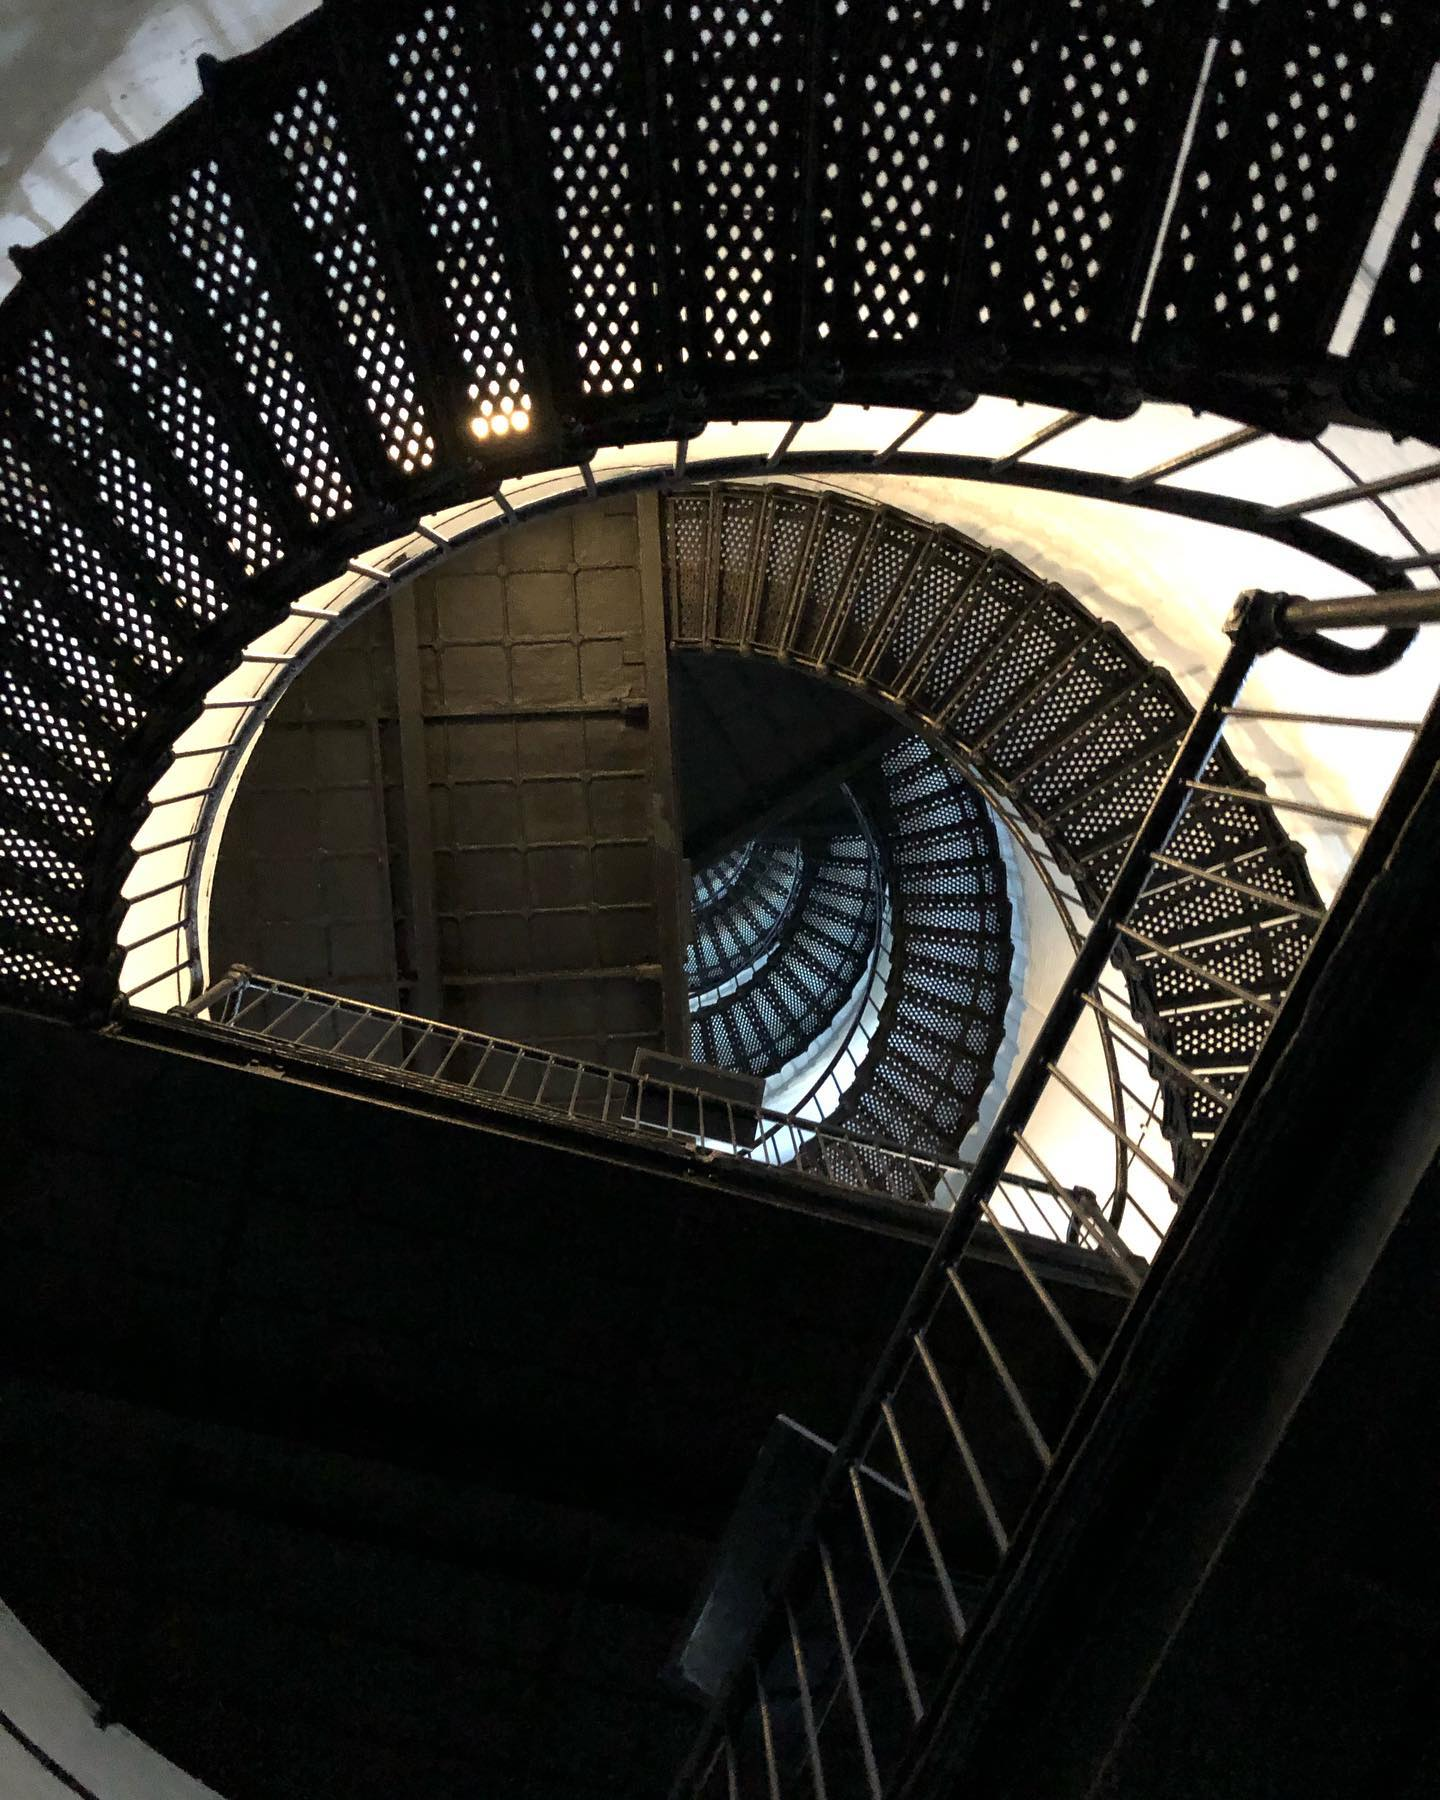 Hunting Island's Lighthouse: Up you go, step by step